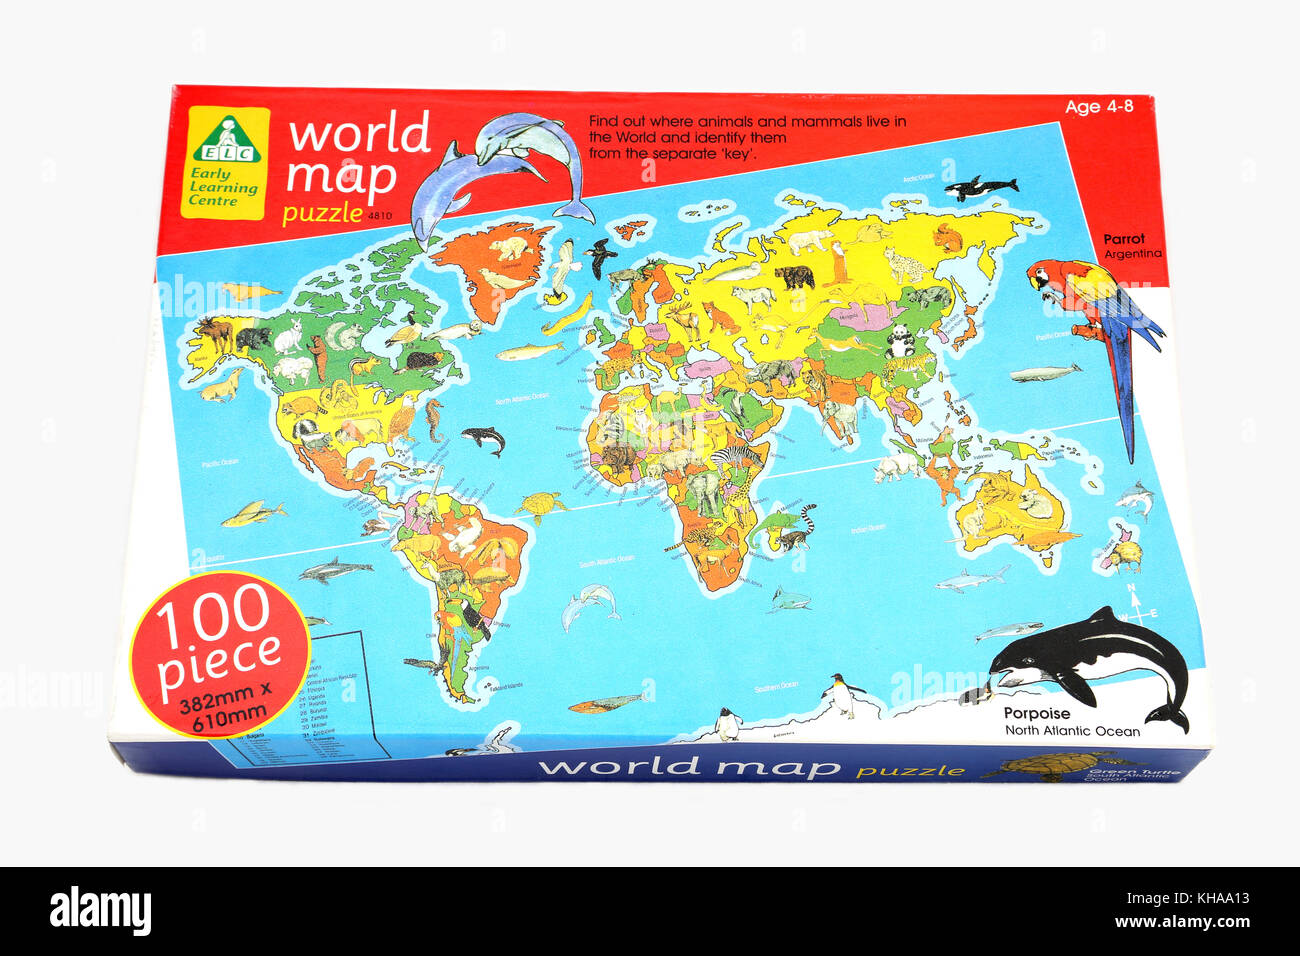 Jigsaw puzzle world map stock photos jigsaw puzzle world map stock early learning centre world map jigsaw puzzle stock image gumiabroncs Choice Image